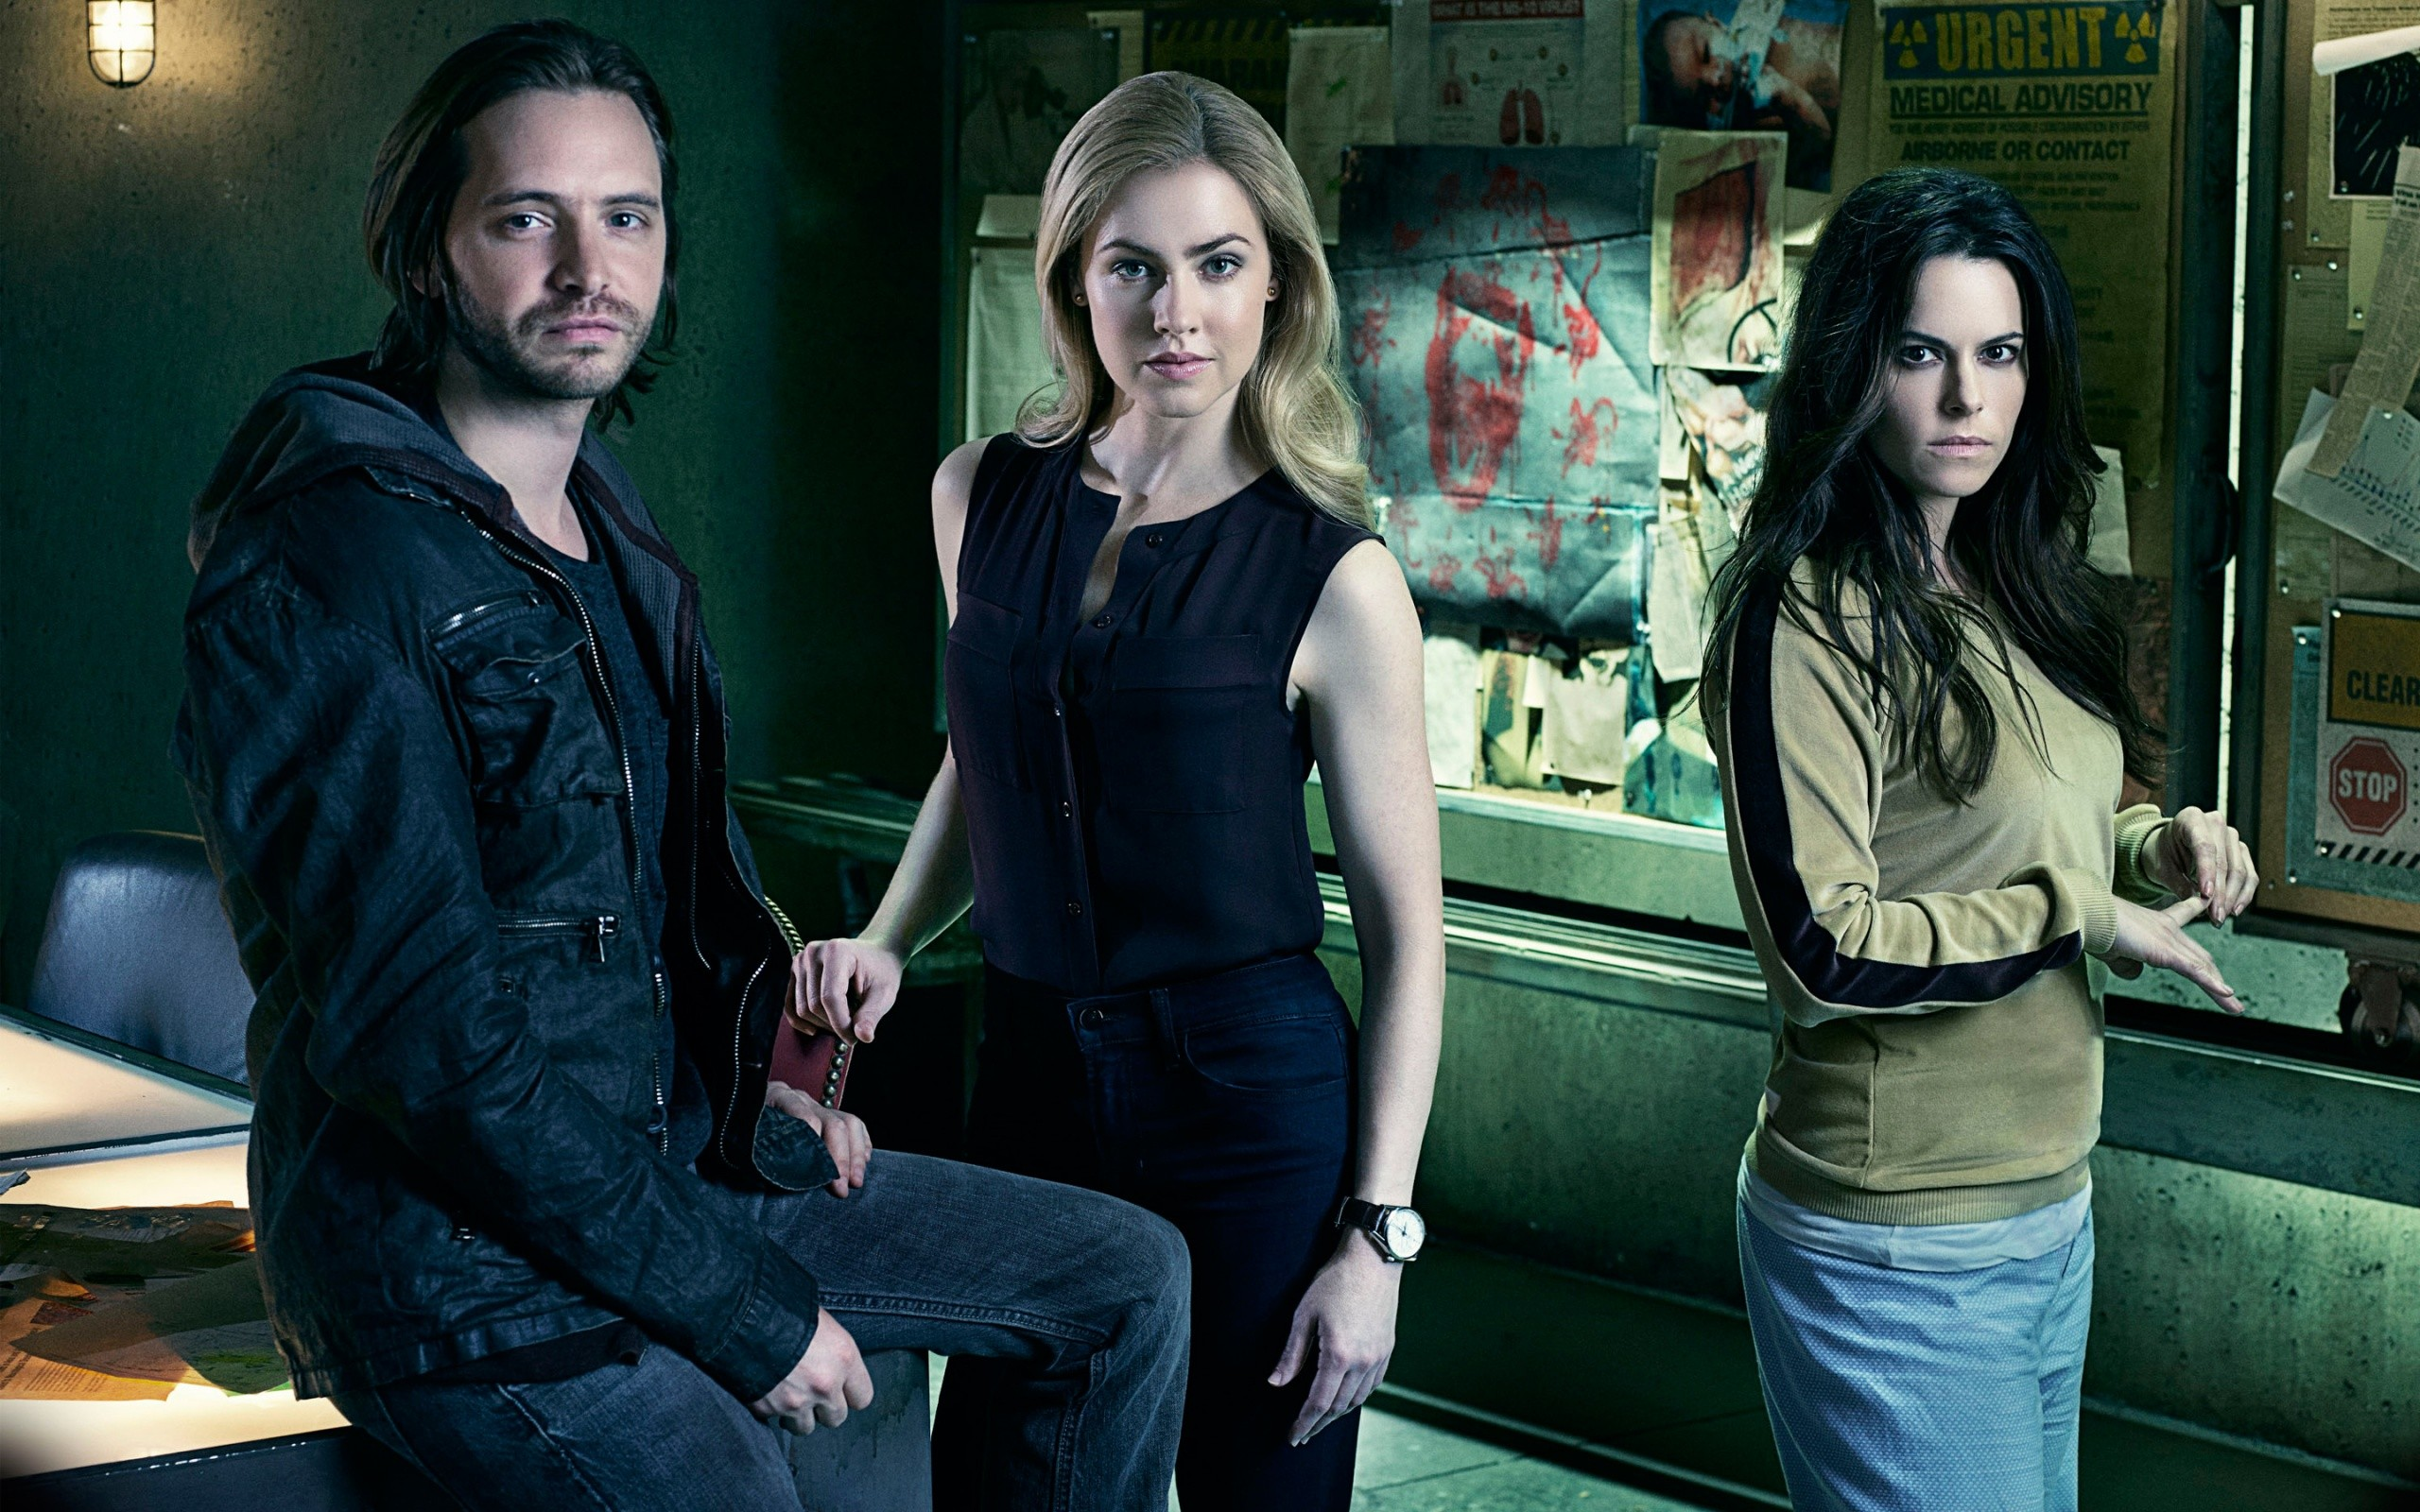 12 Monkeys 2015 Tv Series Wide